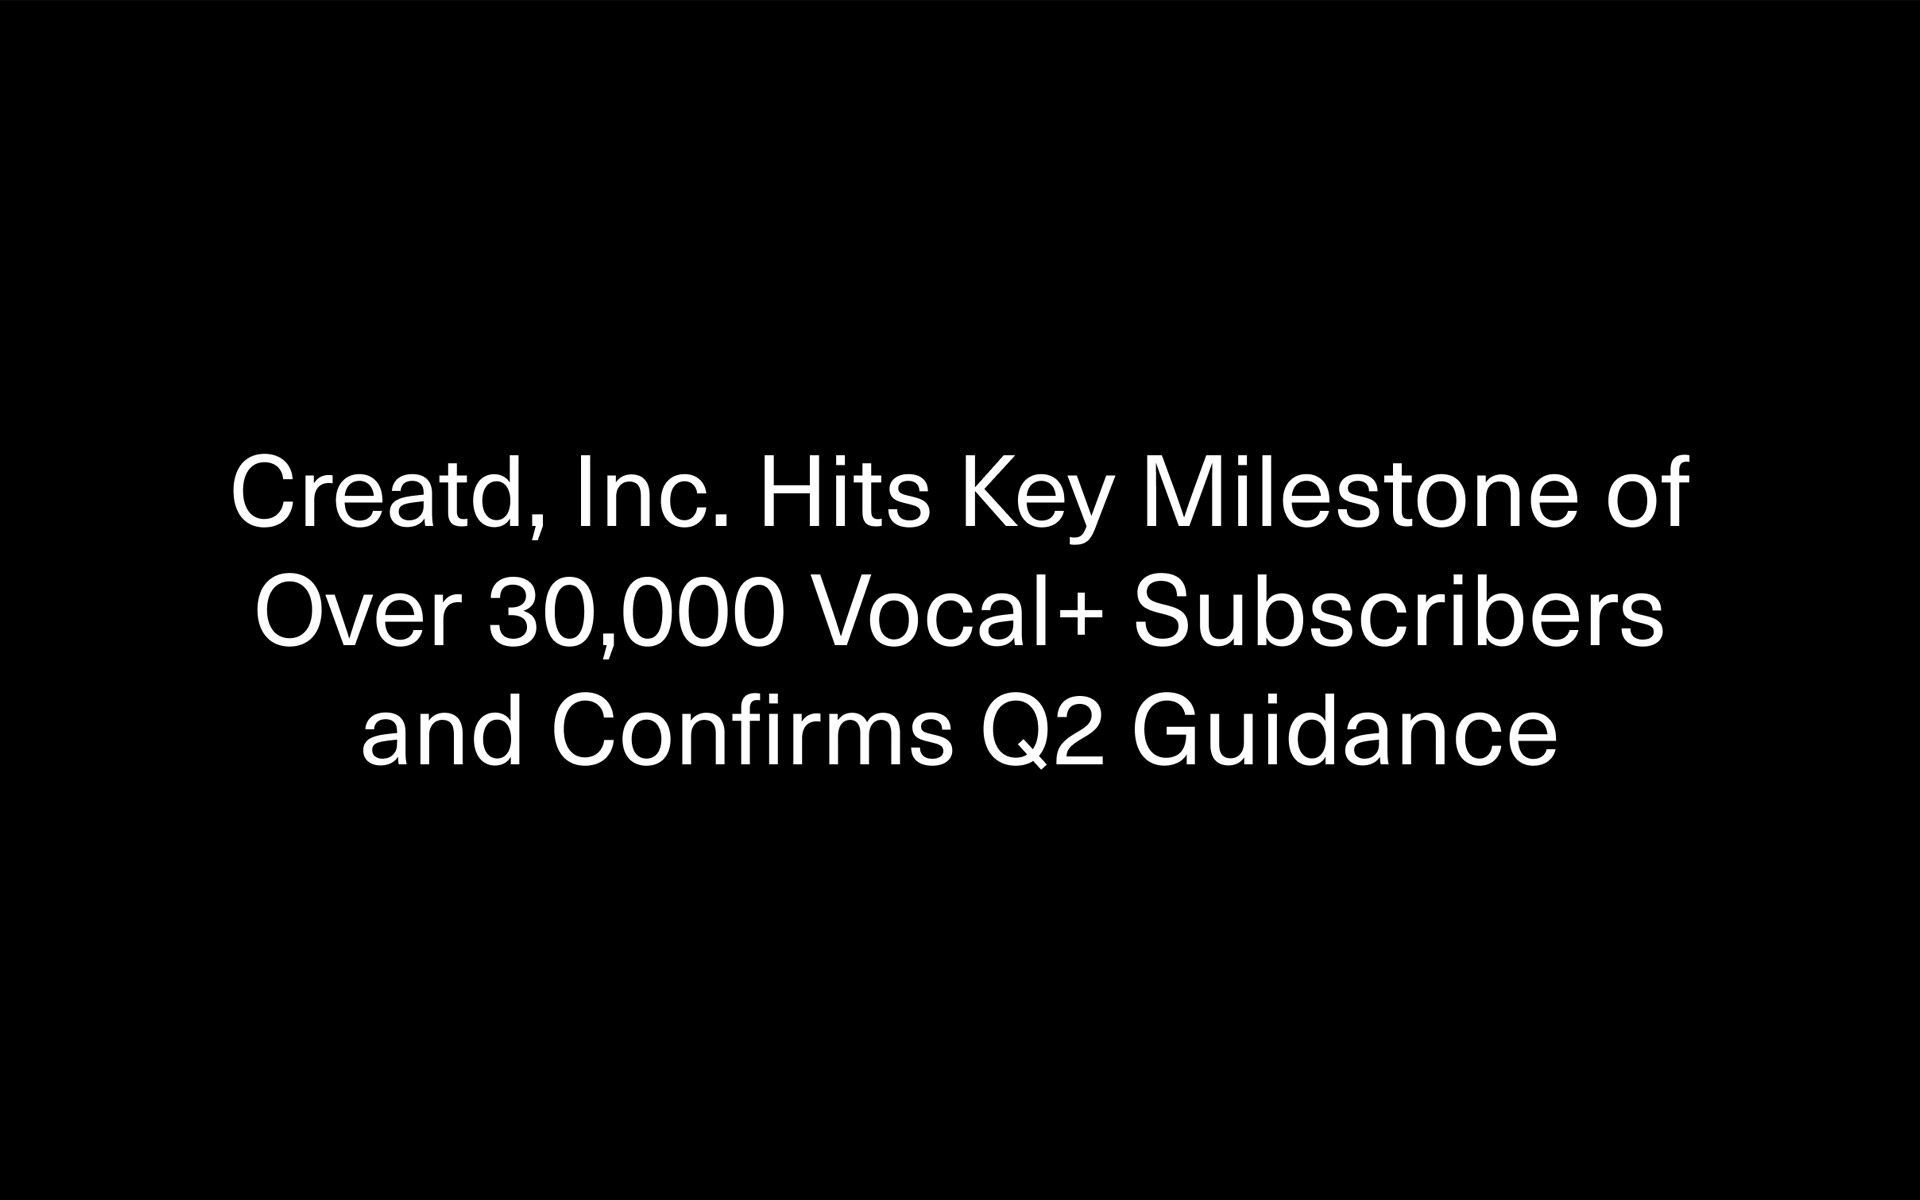 Creatd, Inc. Hits Key Milestone of Over 30,000 Vocal+ Subscribers and Confirms Revenue Guidance